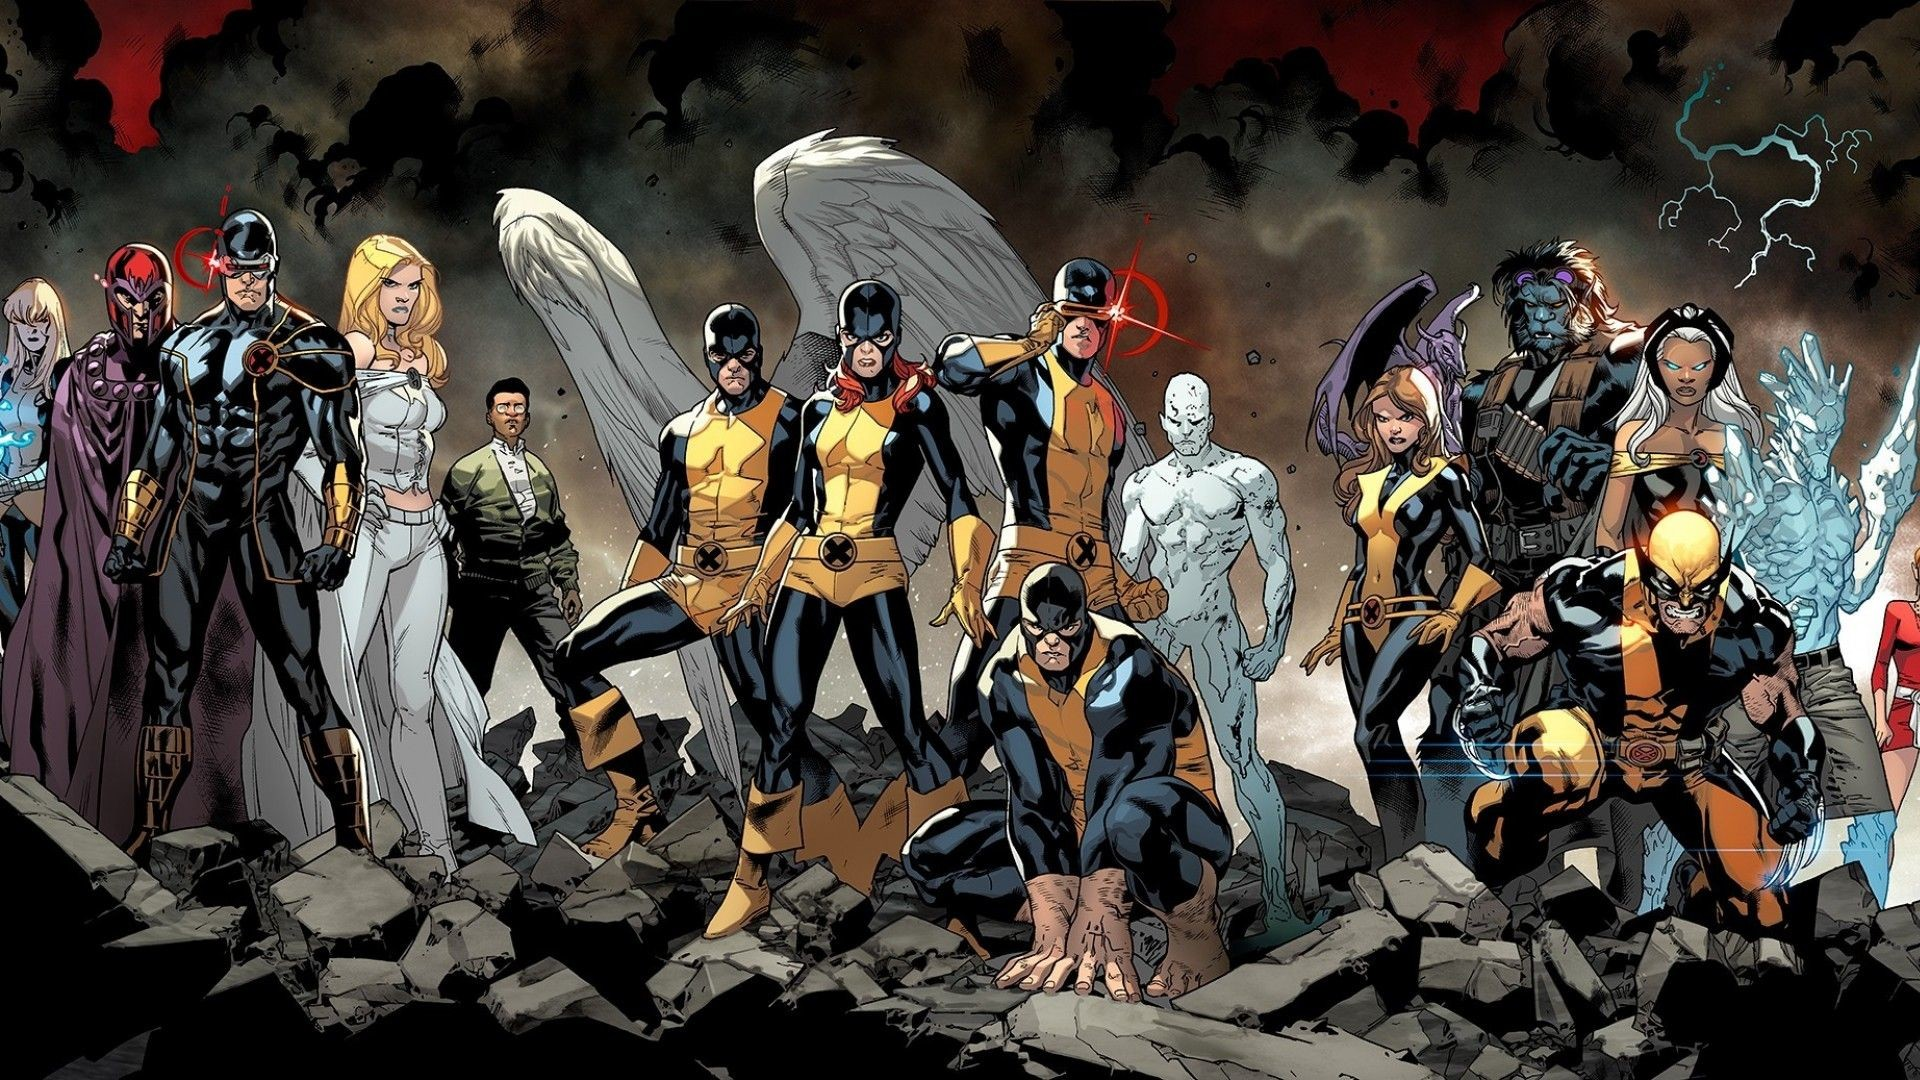 1920x1080 Collection Of X Men Wallpaper On HDWallpapers